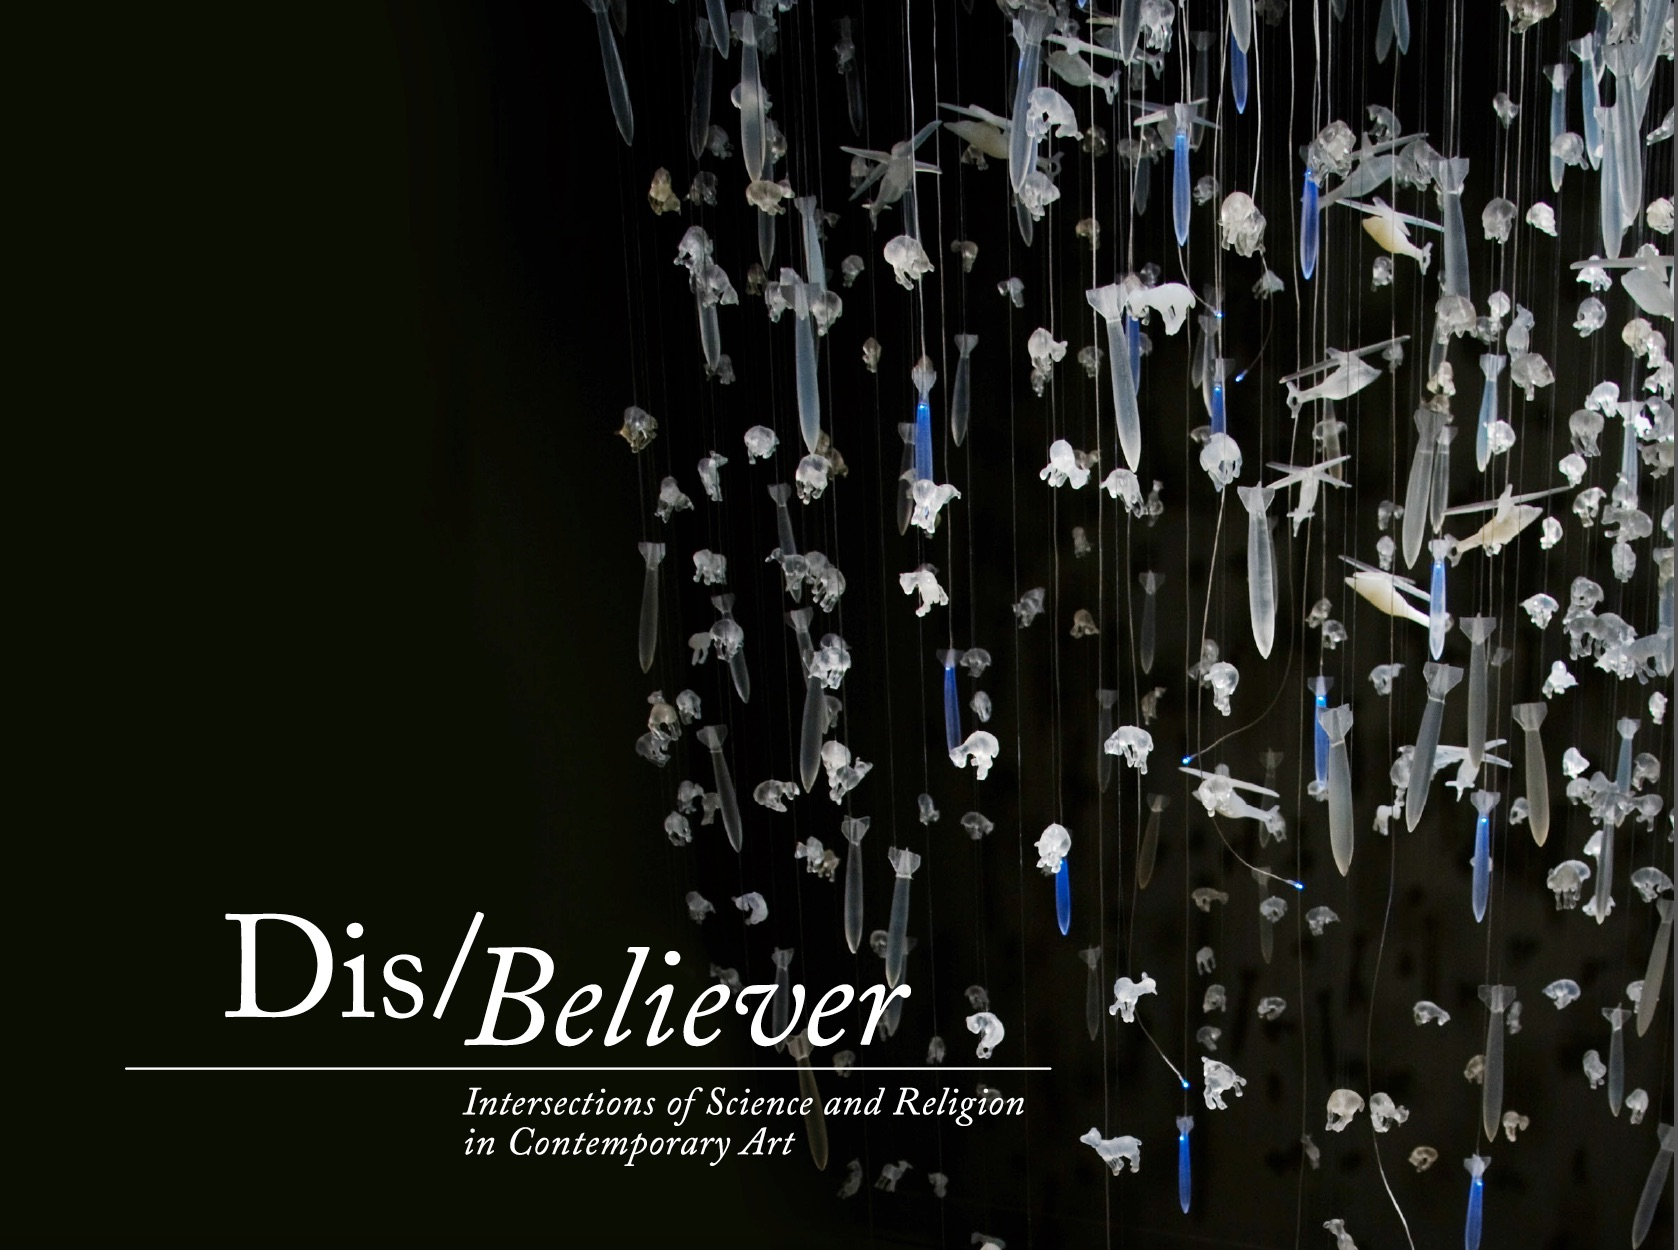 Dis/Believer: Intersections of Science and Religion in Contemporary Art